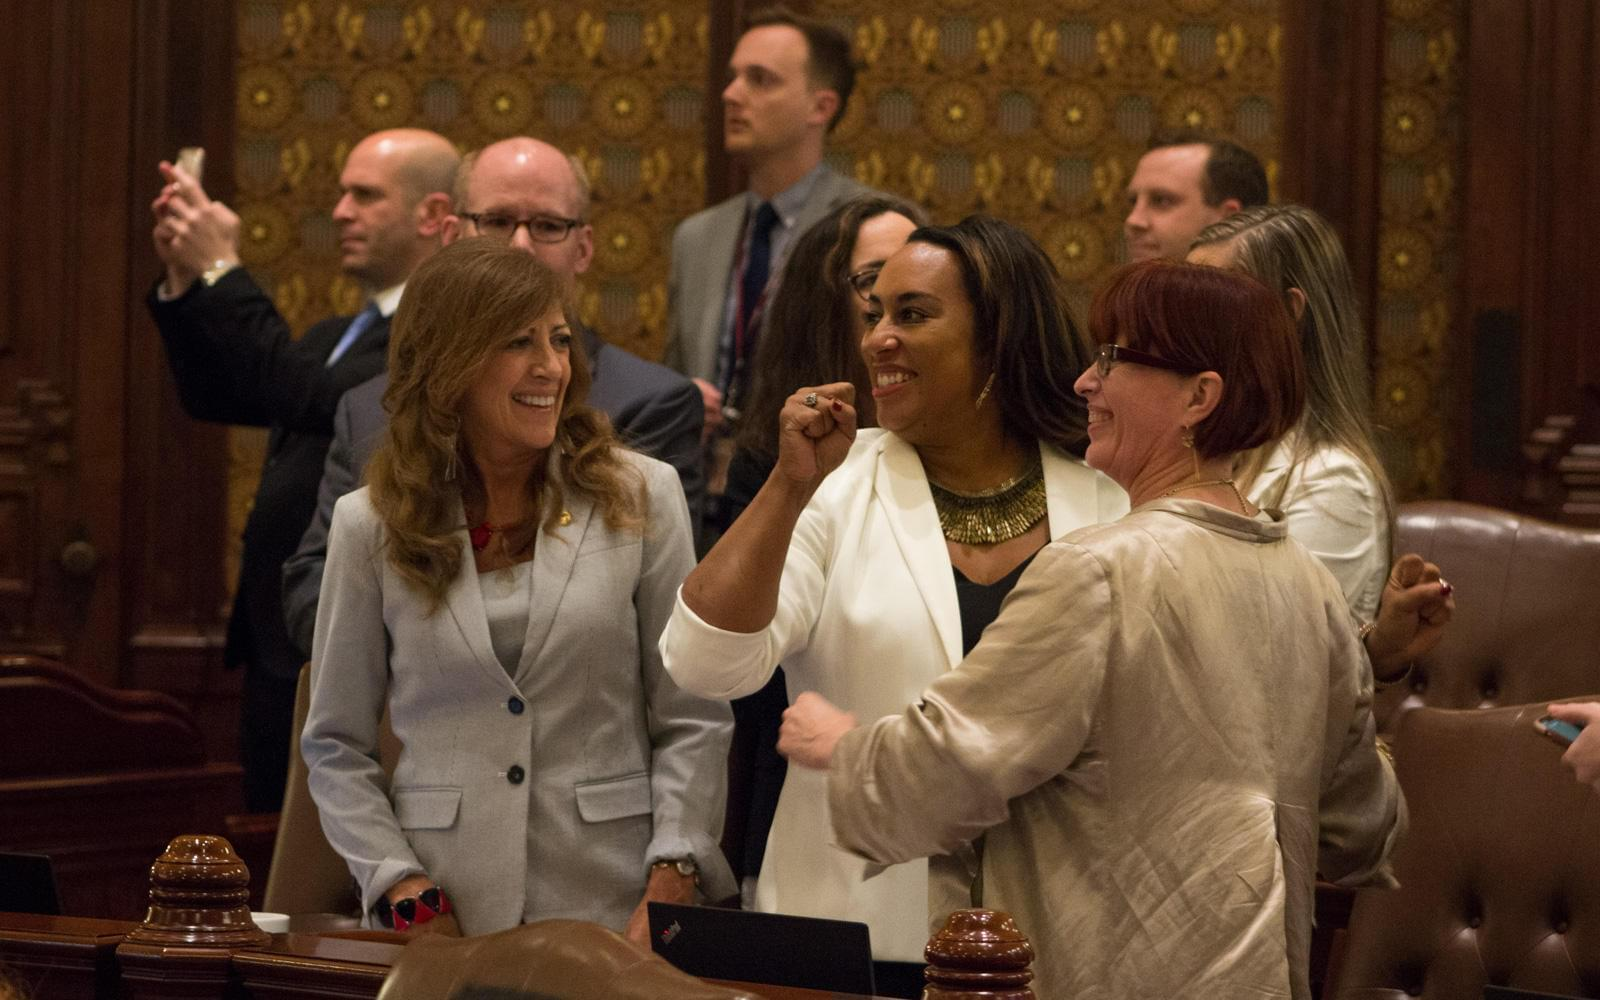 Illinois state Senators celebrate the passage of legislation to legalize marijuana. The lead sponsors were Sens. Heather Steans, right, and Toi Hutchinson, center.